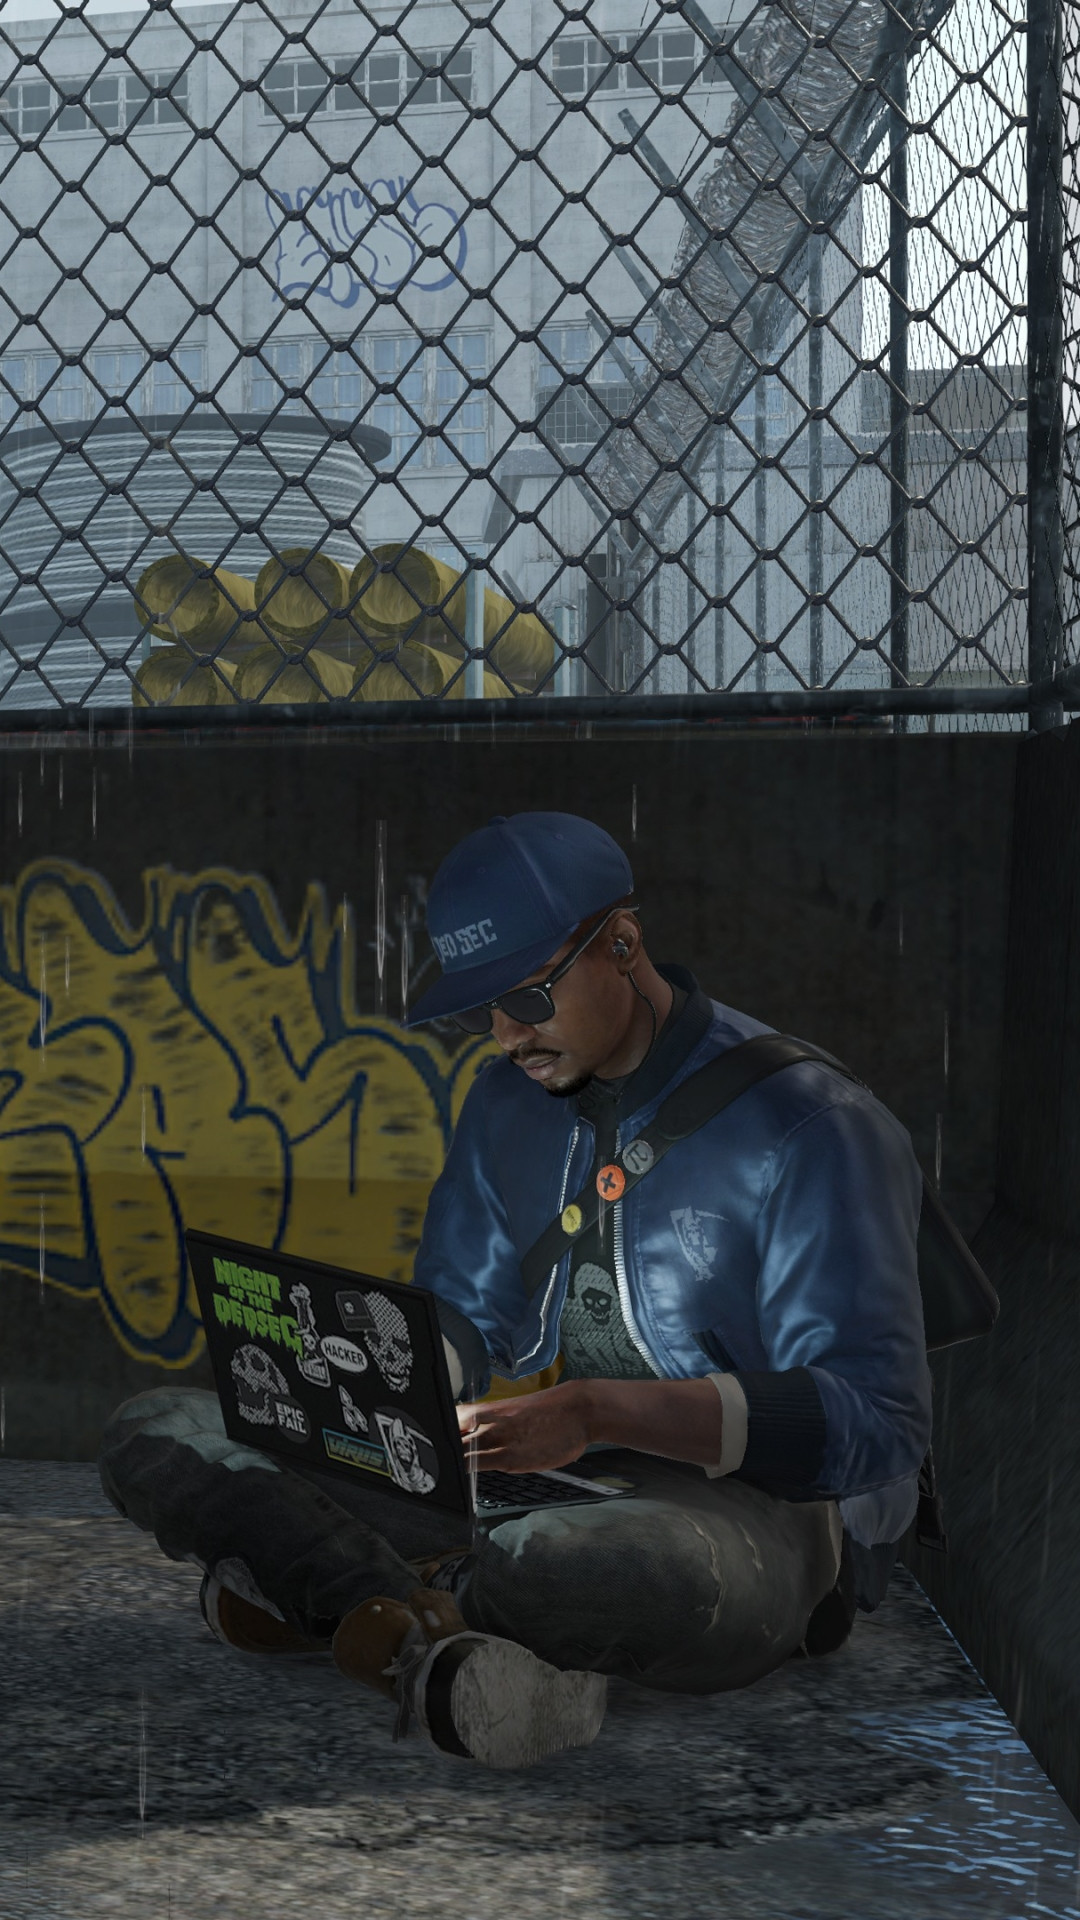 watch dogs 2 video game wallpapers